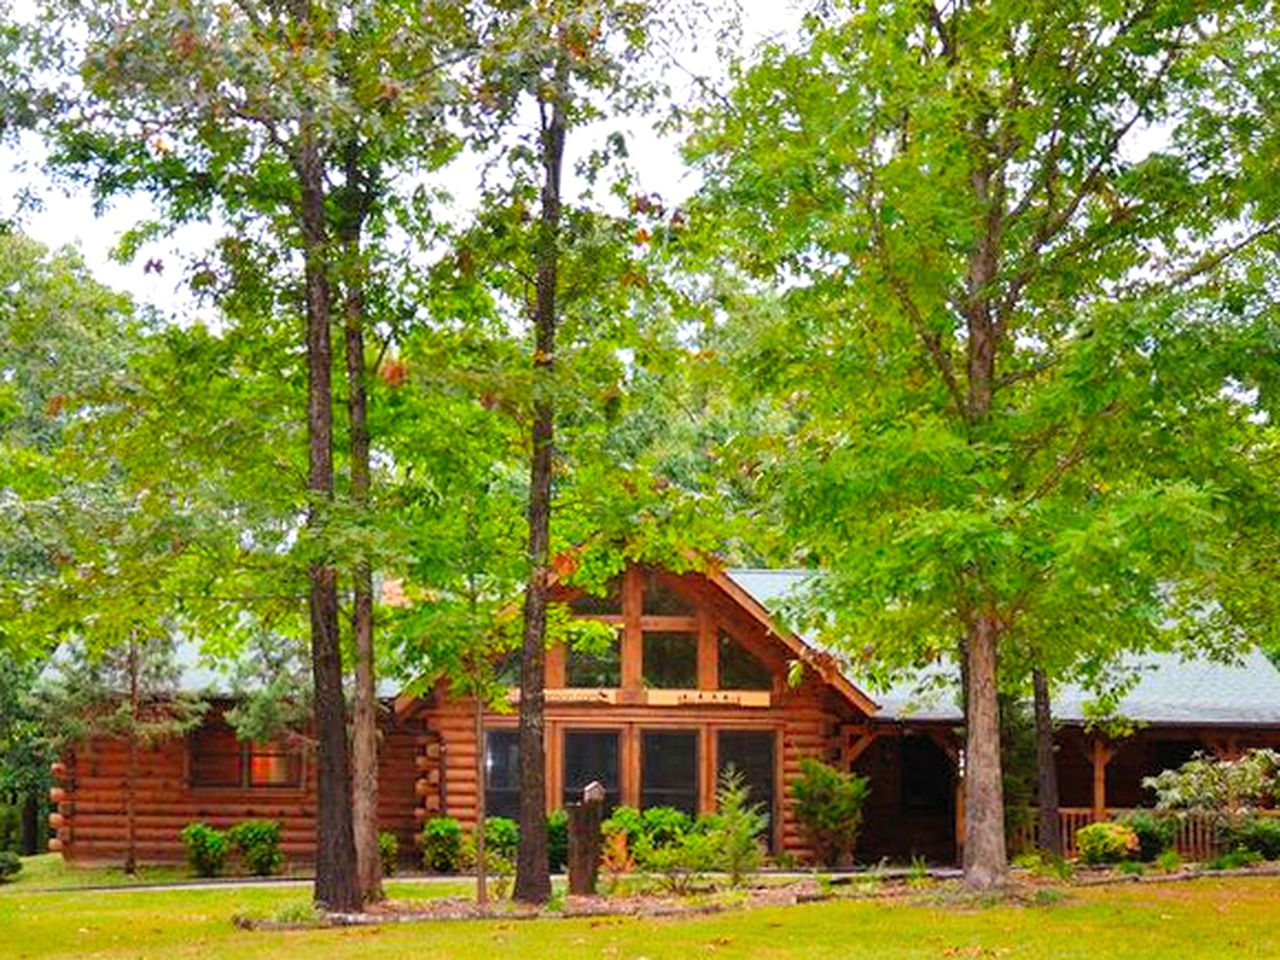 Log Cabins (Ridgedale, Missouri, United States)